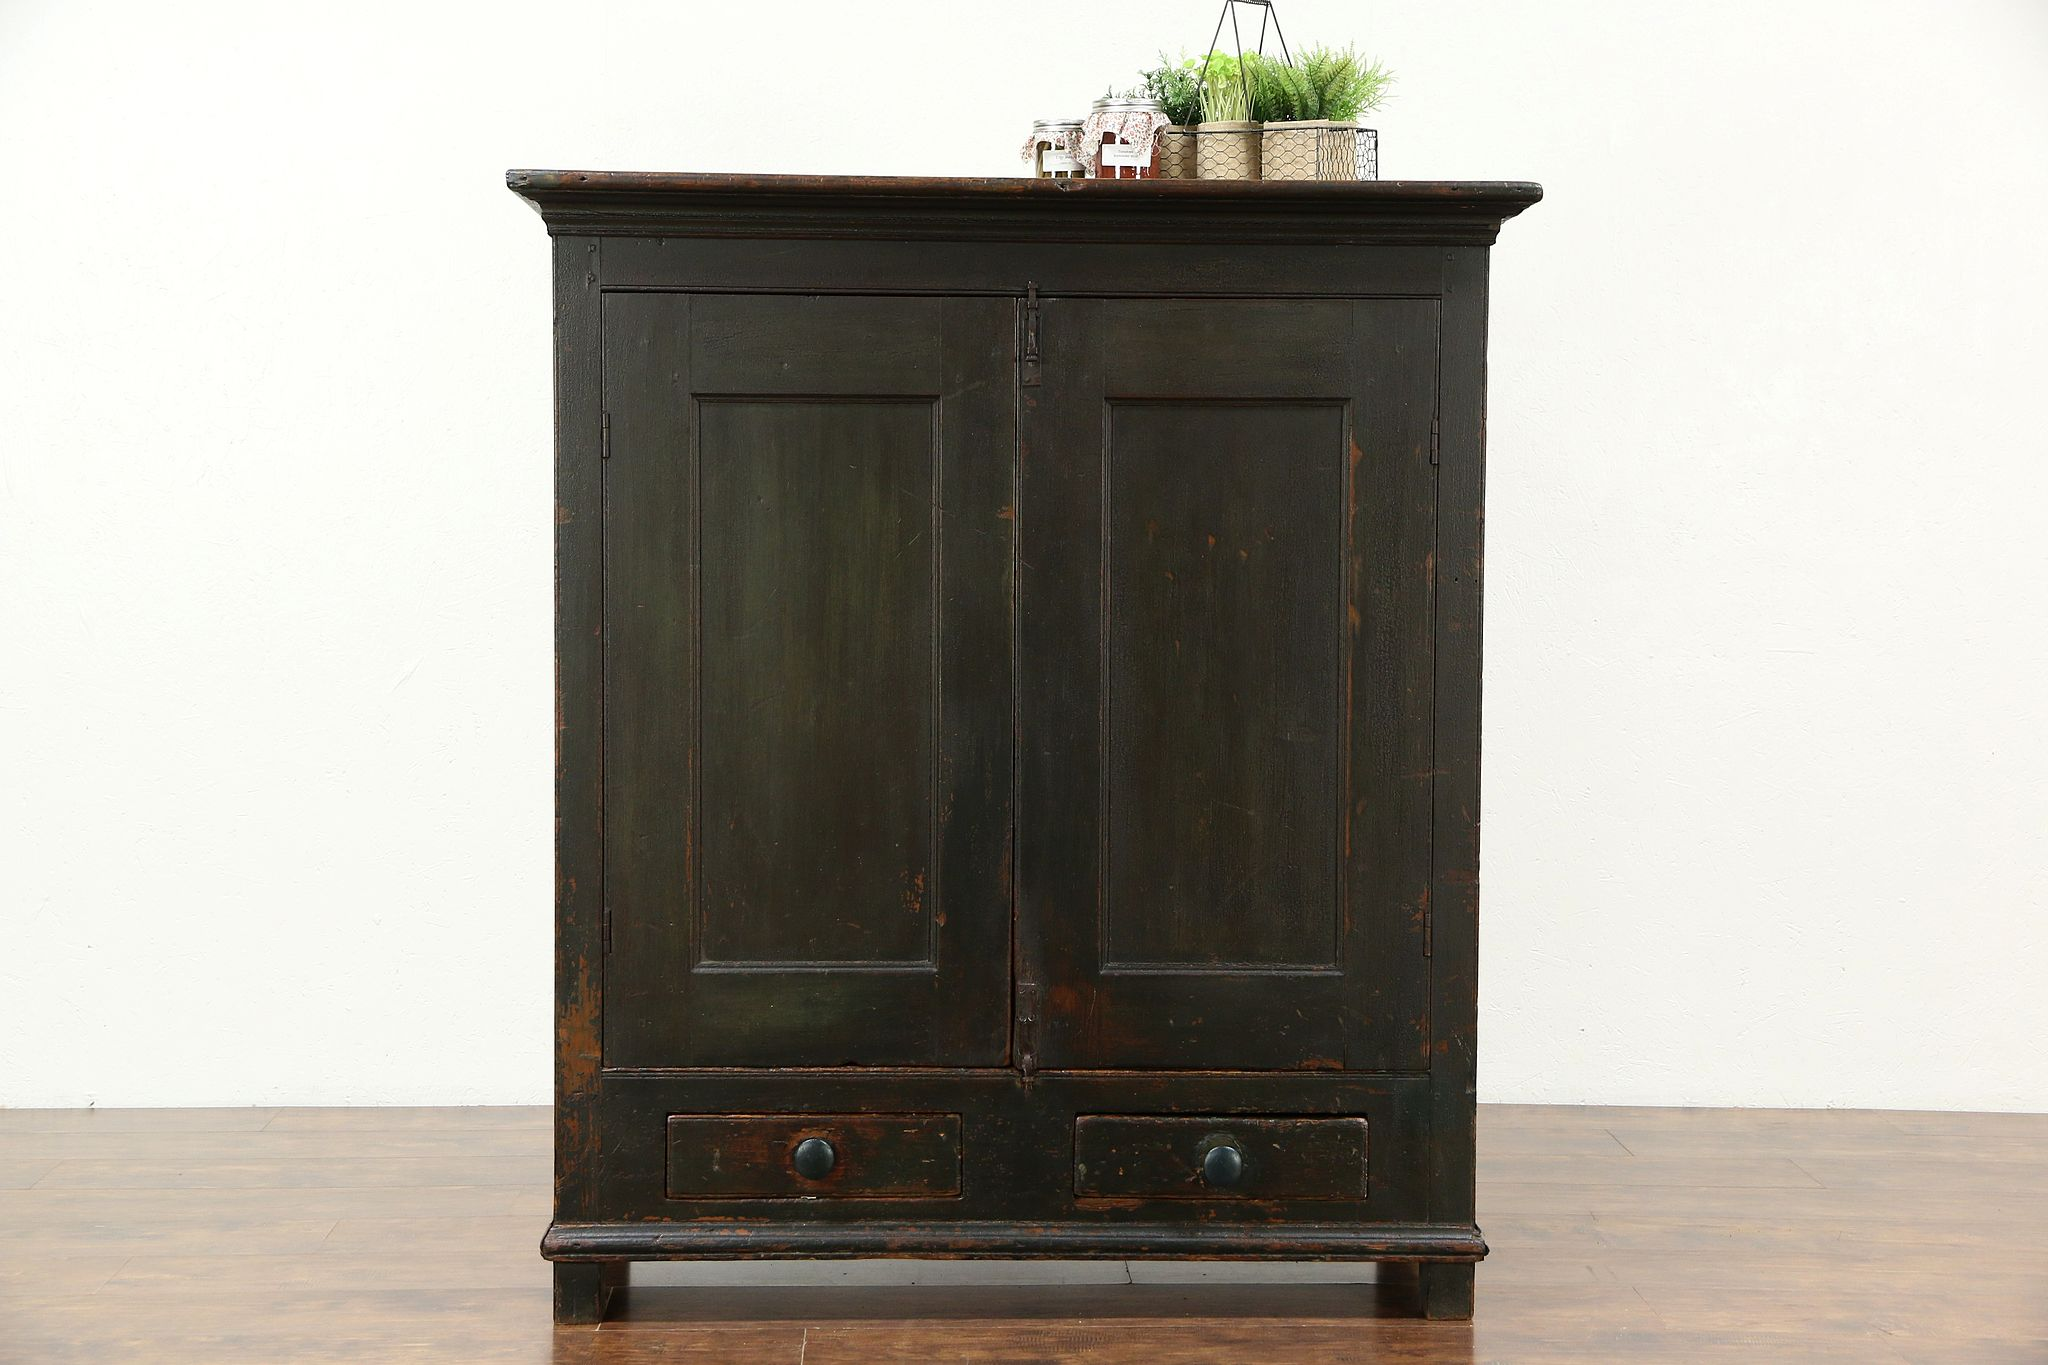 Painted Country Pine Antique 1840 Pantry Cupboard 2 Door Cabinet Maine & SOLD - Painted Country Pine Antique 1840 Pantry Cupboard 2 Door ...